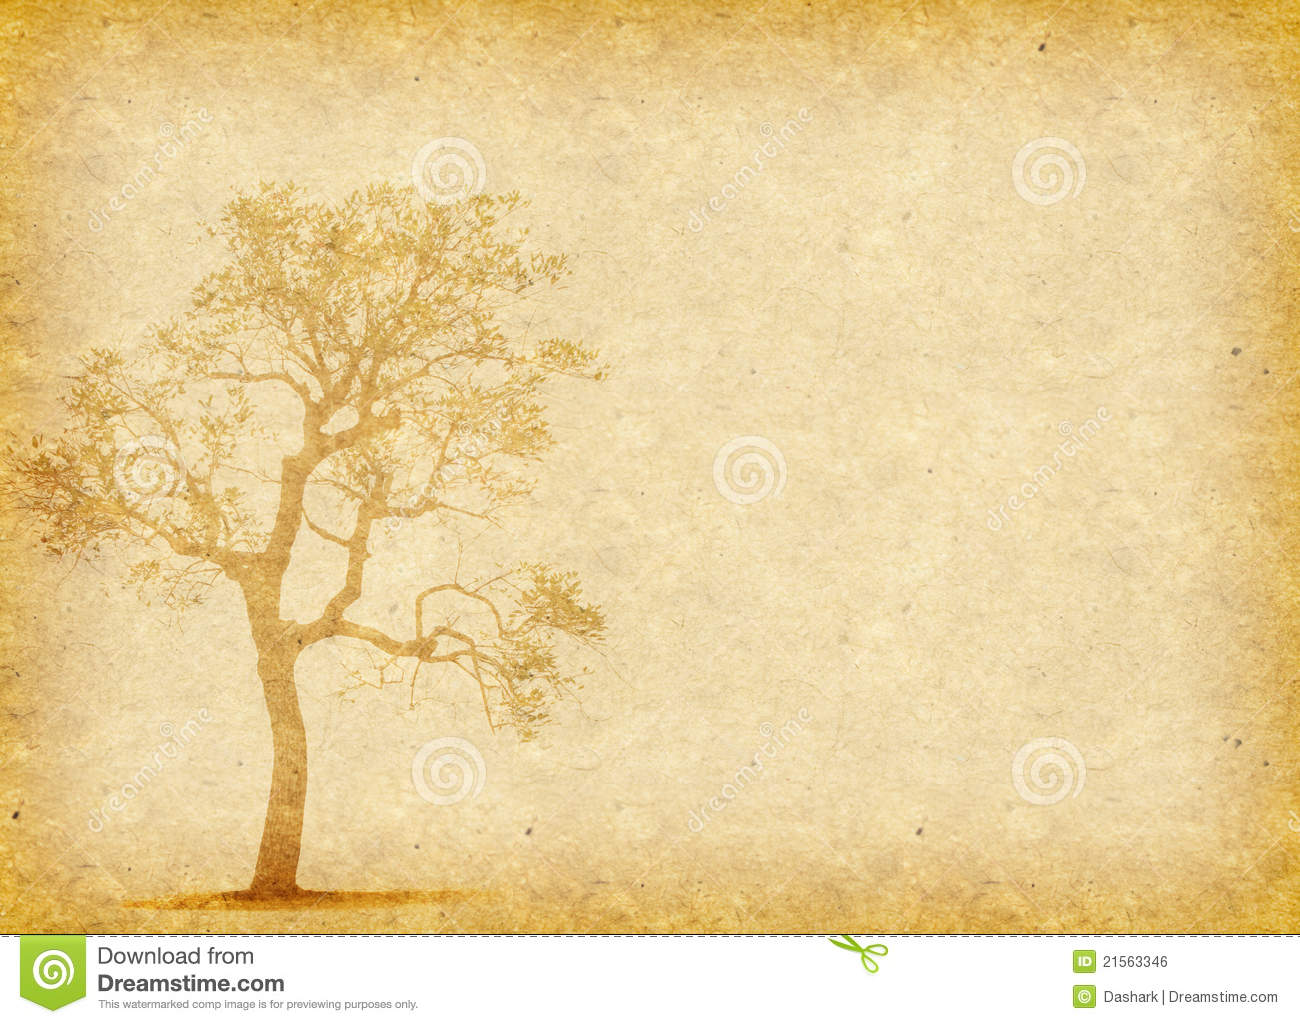 Tree With Old Paper Royalty Free Stock Image - Image: 21563346